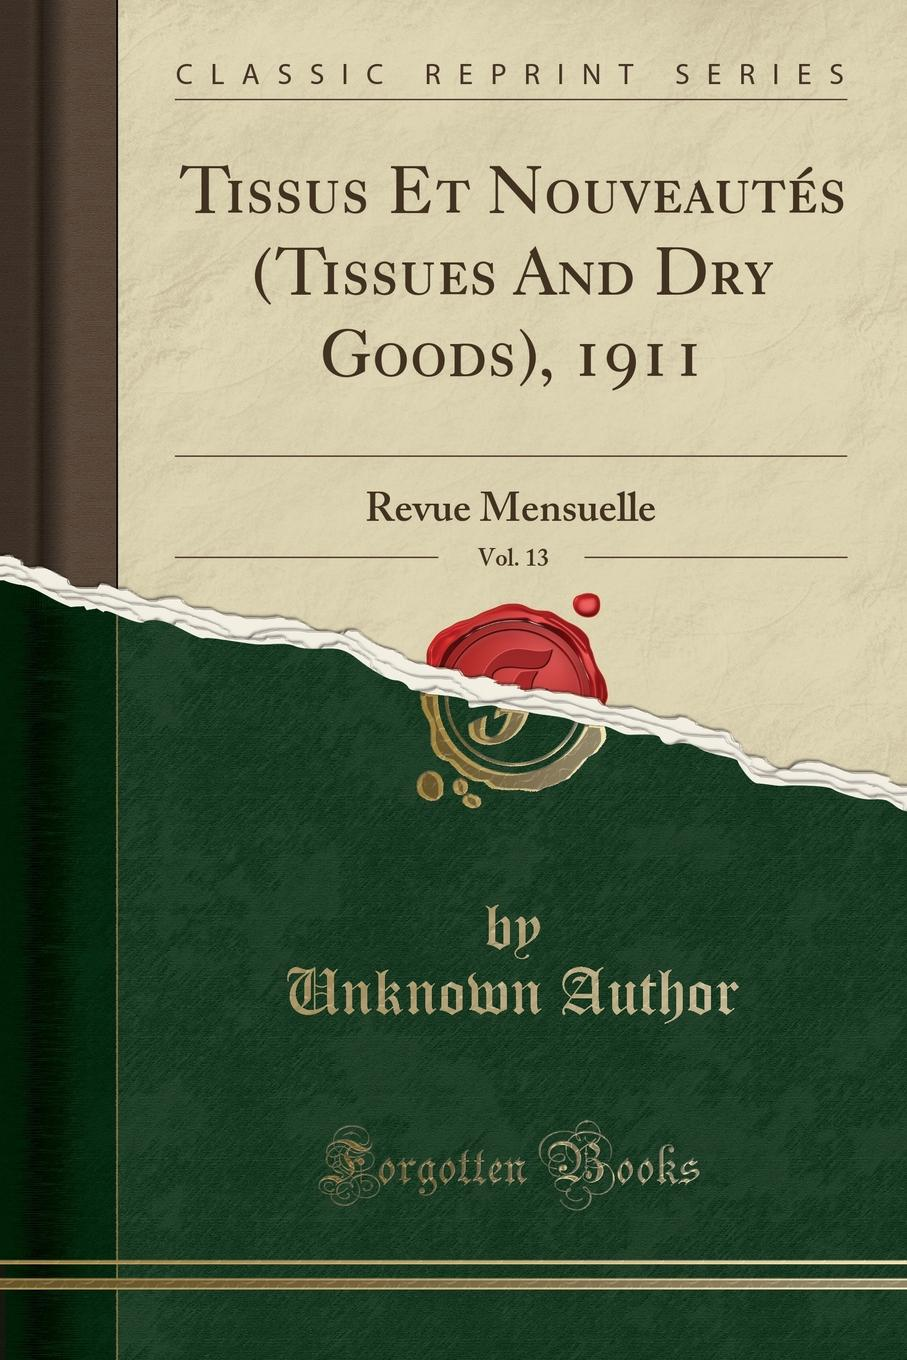 Unknown Author Tissus Et Nouveautes (Tissues And Dry Goods), 1911, Vol. 13. Revue Mensuelle (Classic Reprint) original 1pcs byv20 40 goods in stock